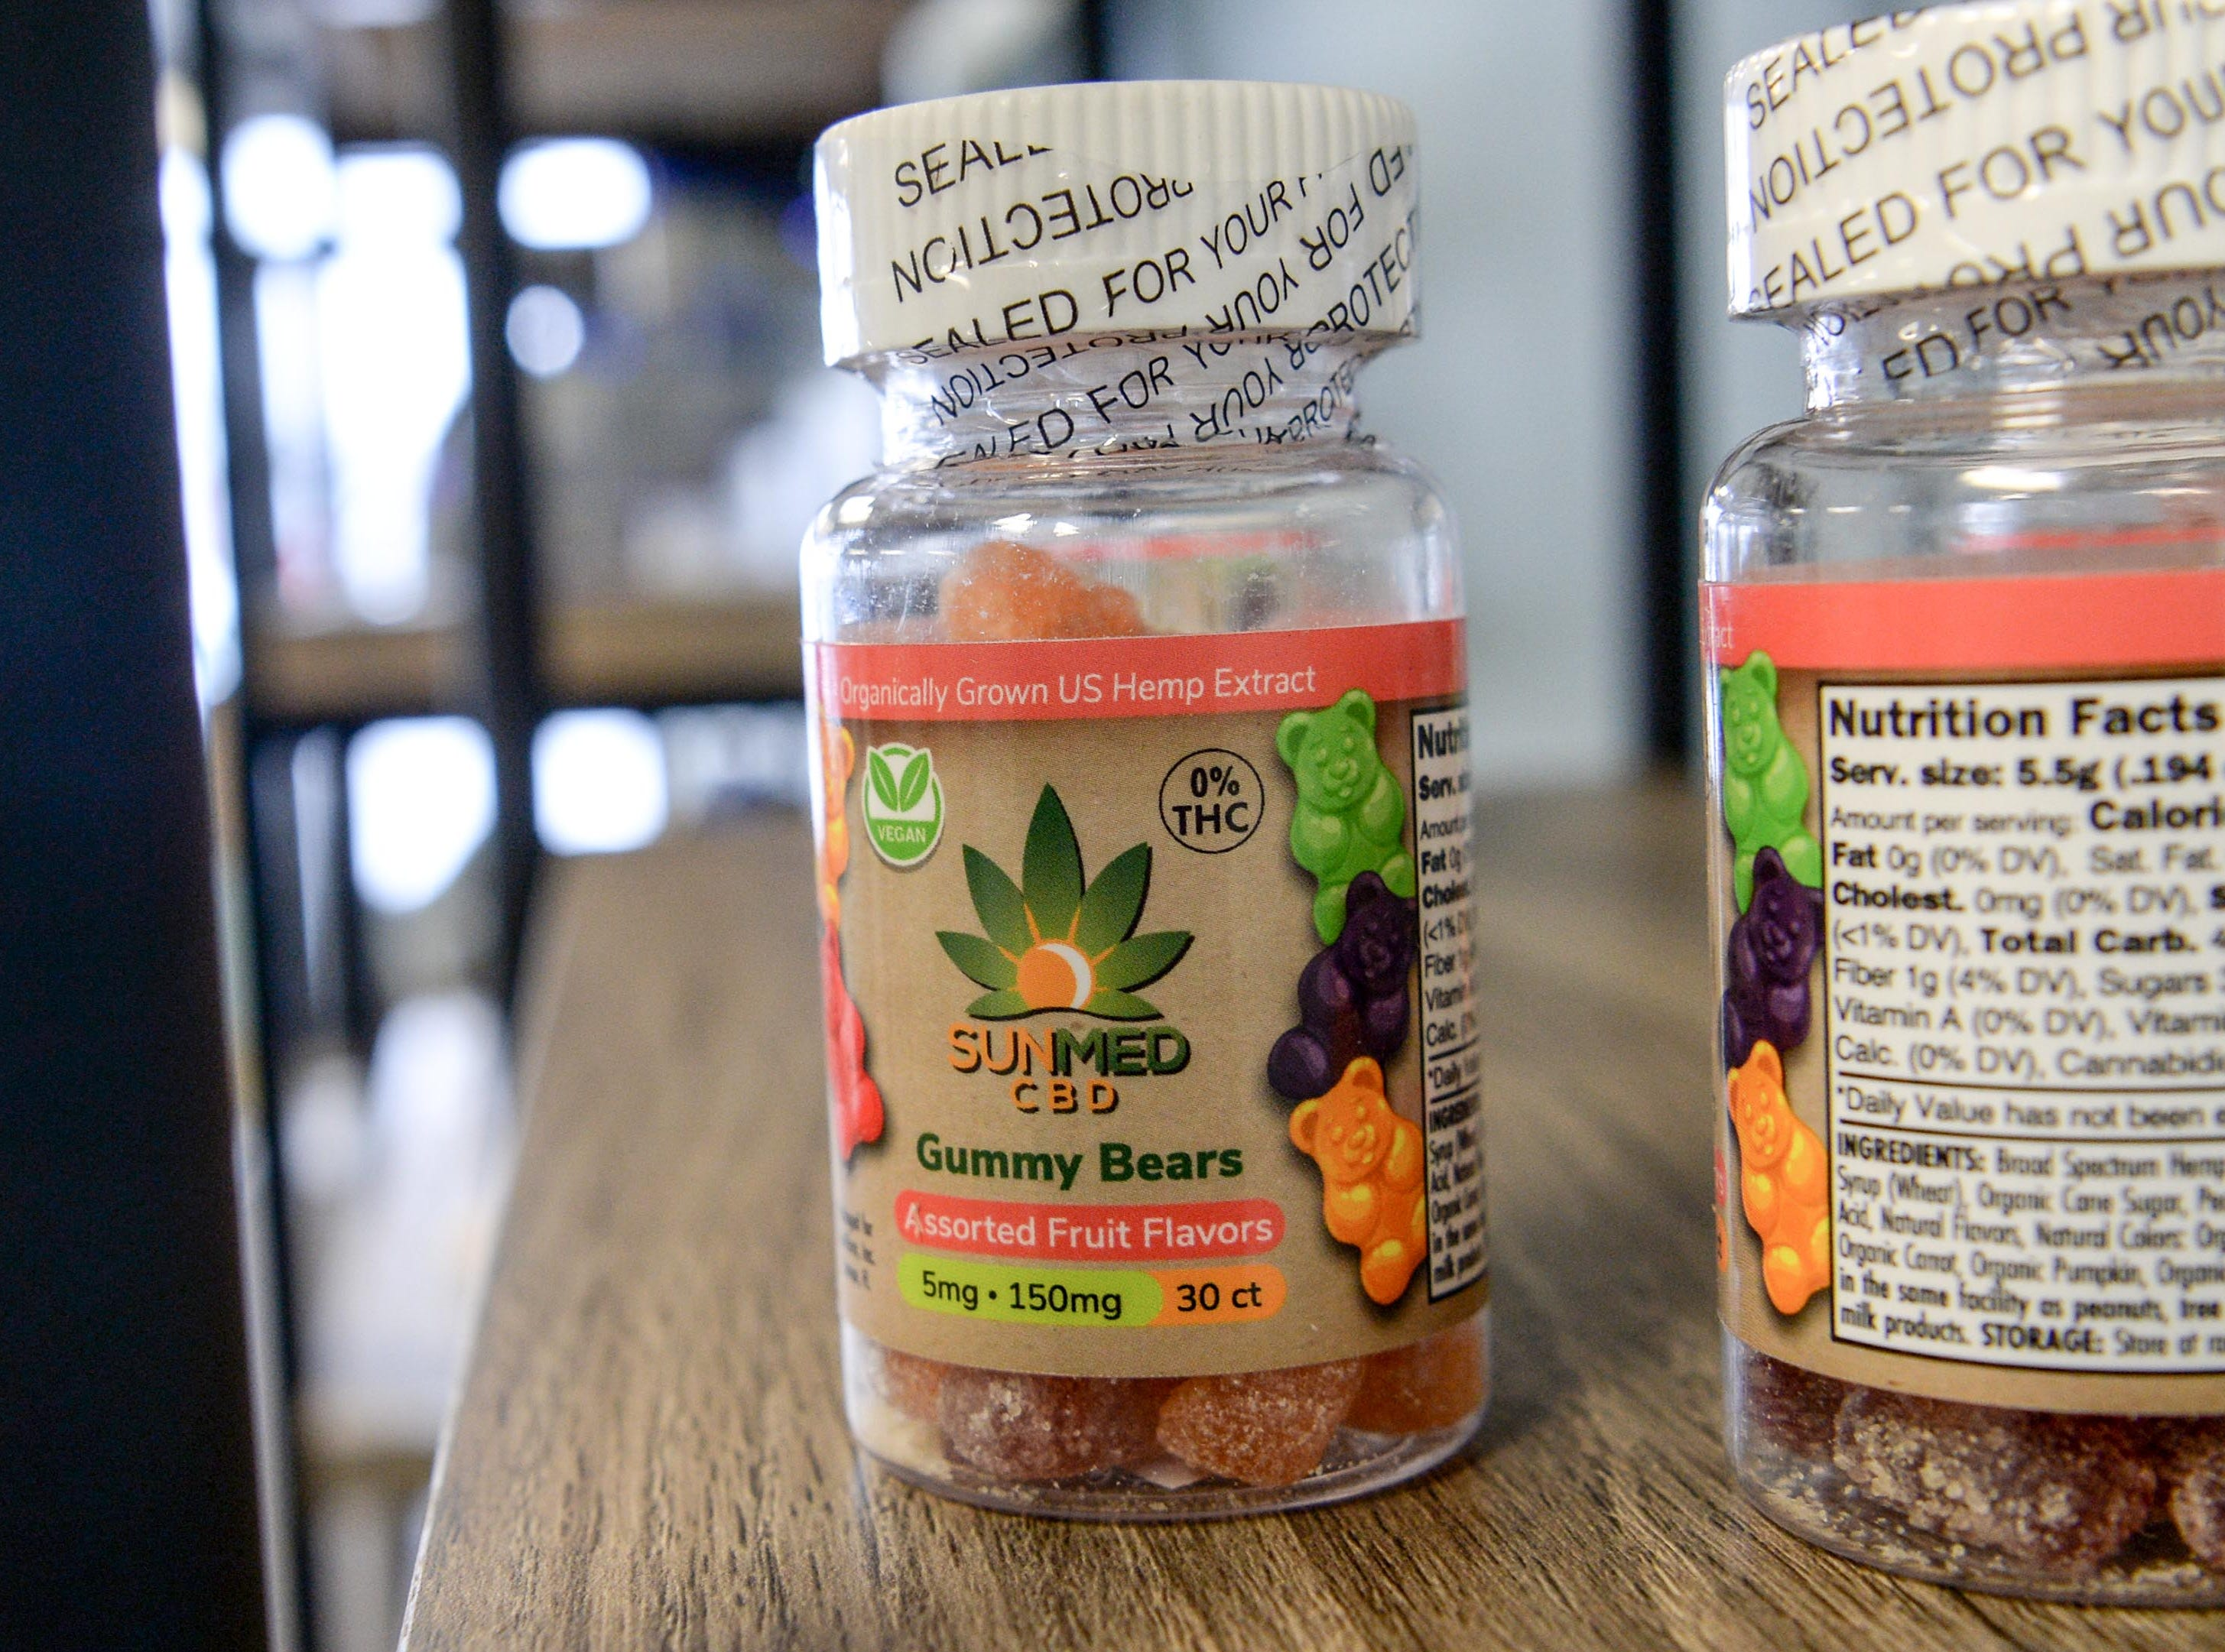 A bottle of gummy bears with organically grown U.S. Hemp extract with no THC (tetrahydrocannabinol) at Your CBD Store Anderson on Clemson Boulevard, which opens Monday, February 25. The use of the CBD (Cannabidiol) is what some use legally from cannabis plants for ailments including anxiety, seizures and pain, said store owner Alison Sheppard.